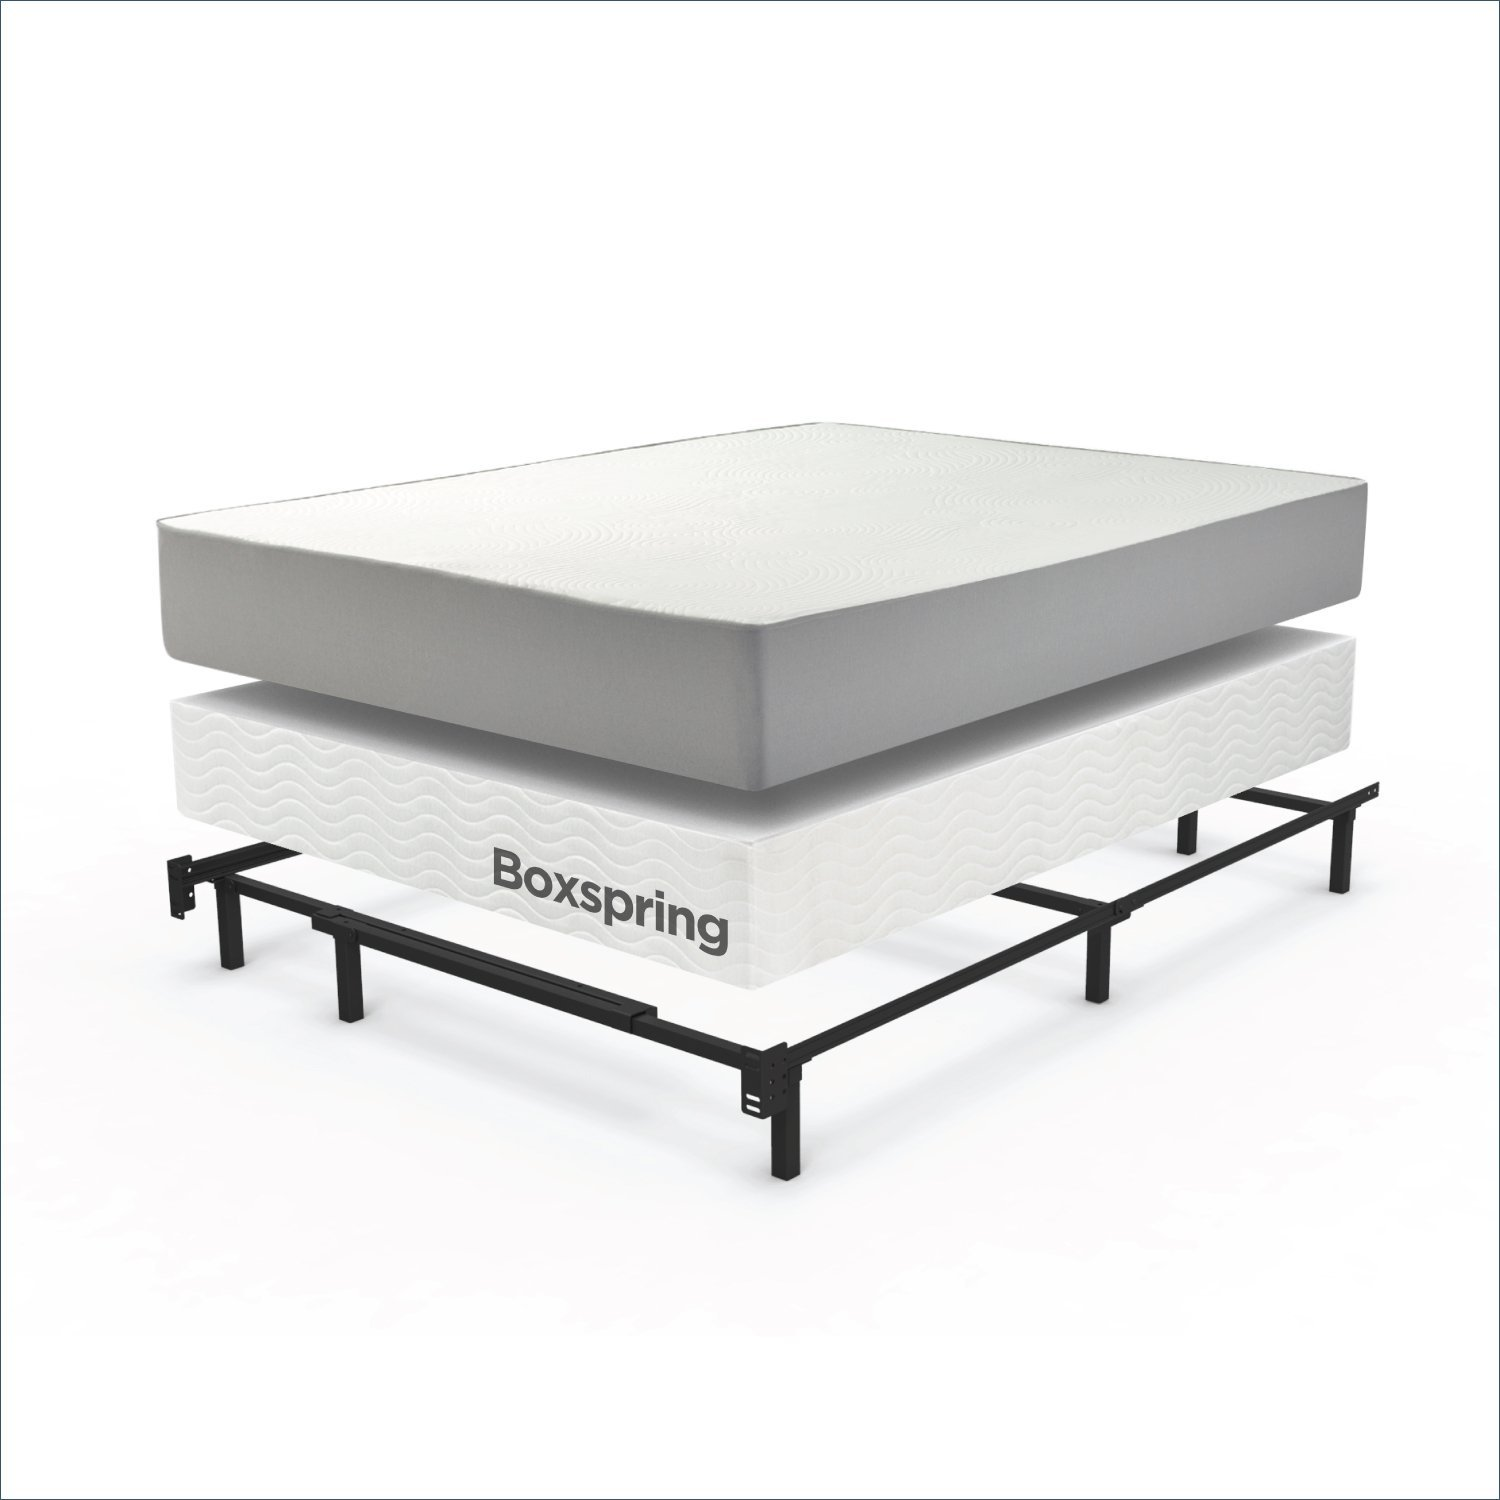 twin size mattress and frame Top 10 Twin Size Beds    Best Reviews for You (2018) twin size mattress and frame